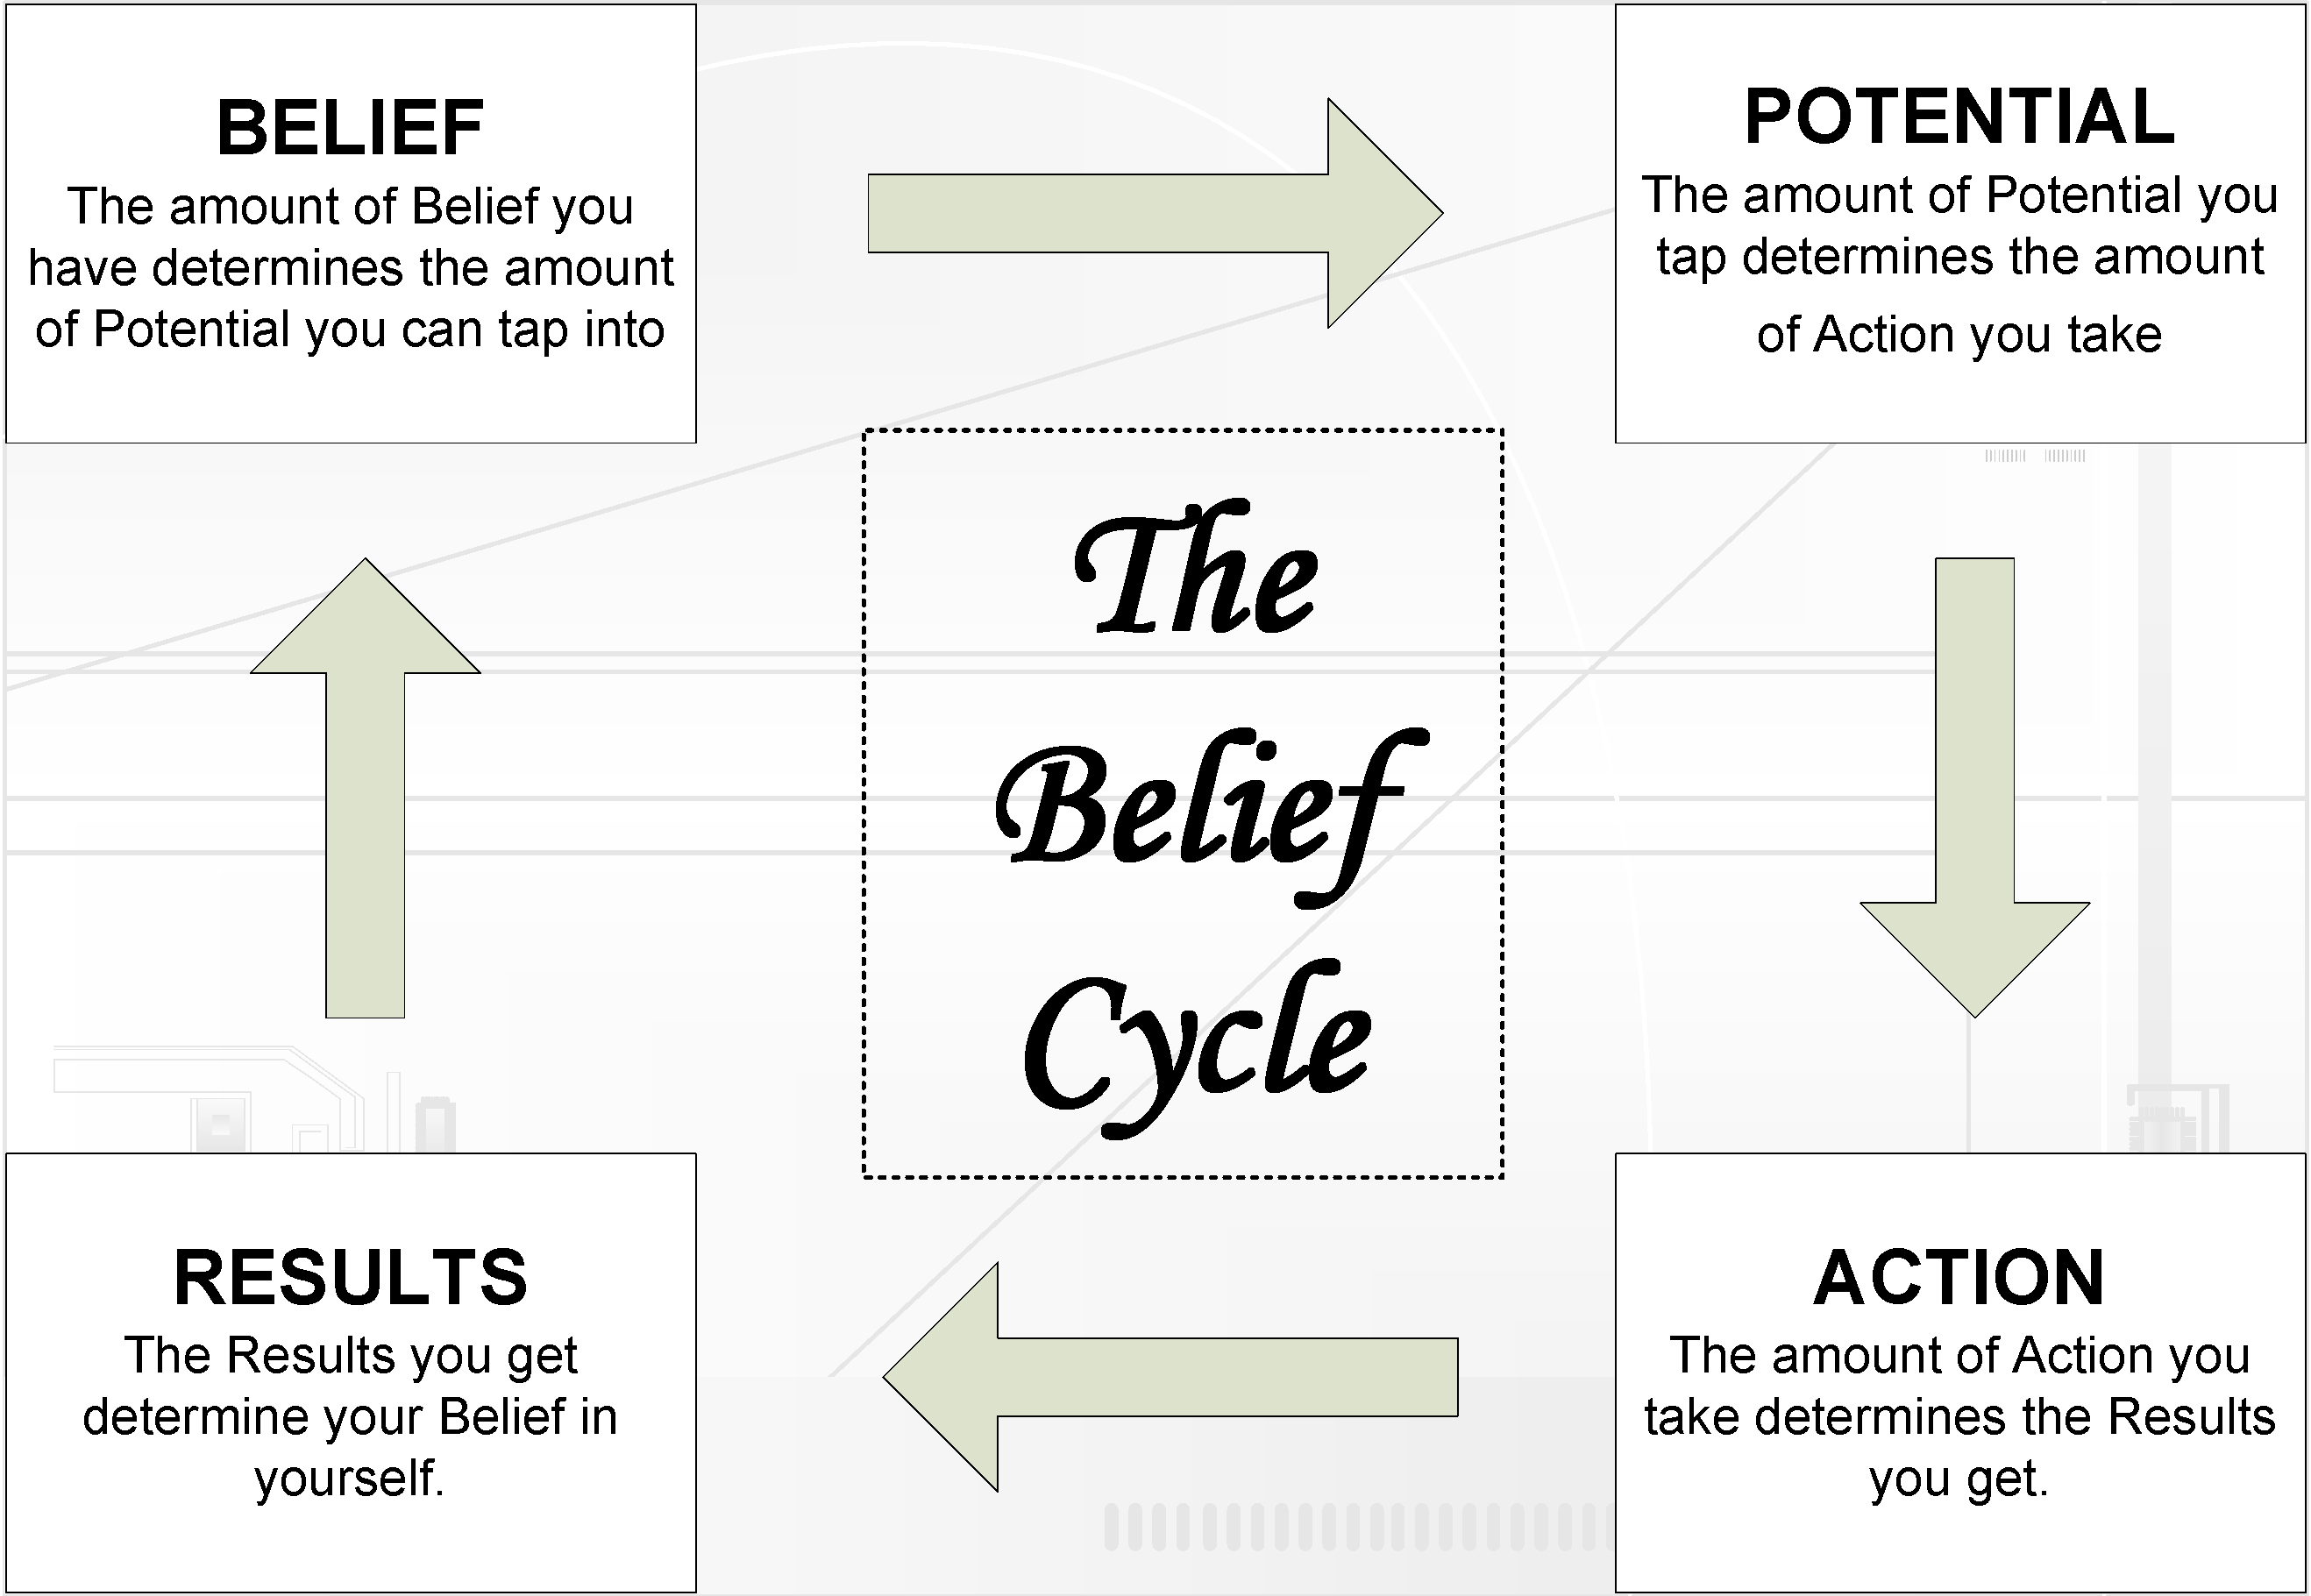 http://johnsinternetmarketingblog.com/wp-content/uploads/2010/10/Belief-Cycle-tmb2.png